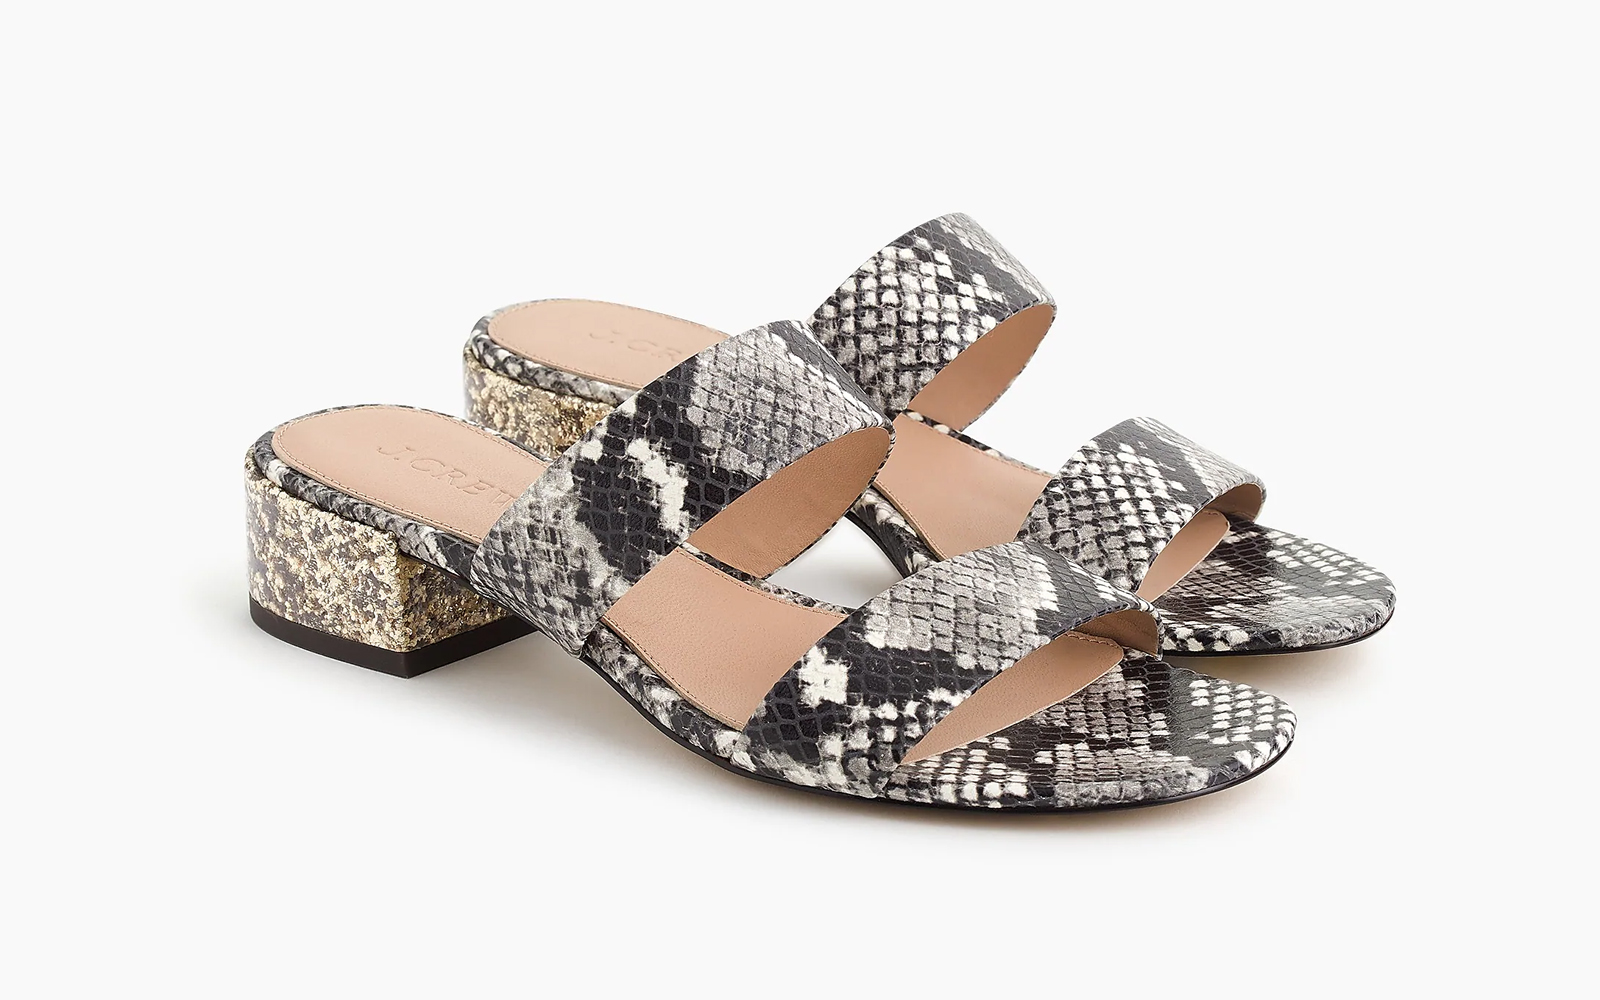 Double-strap Leather Slides in Faux-snakeskin